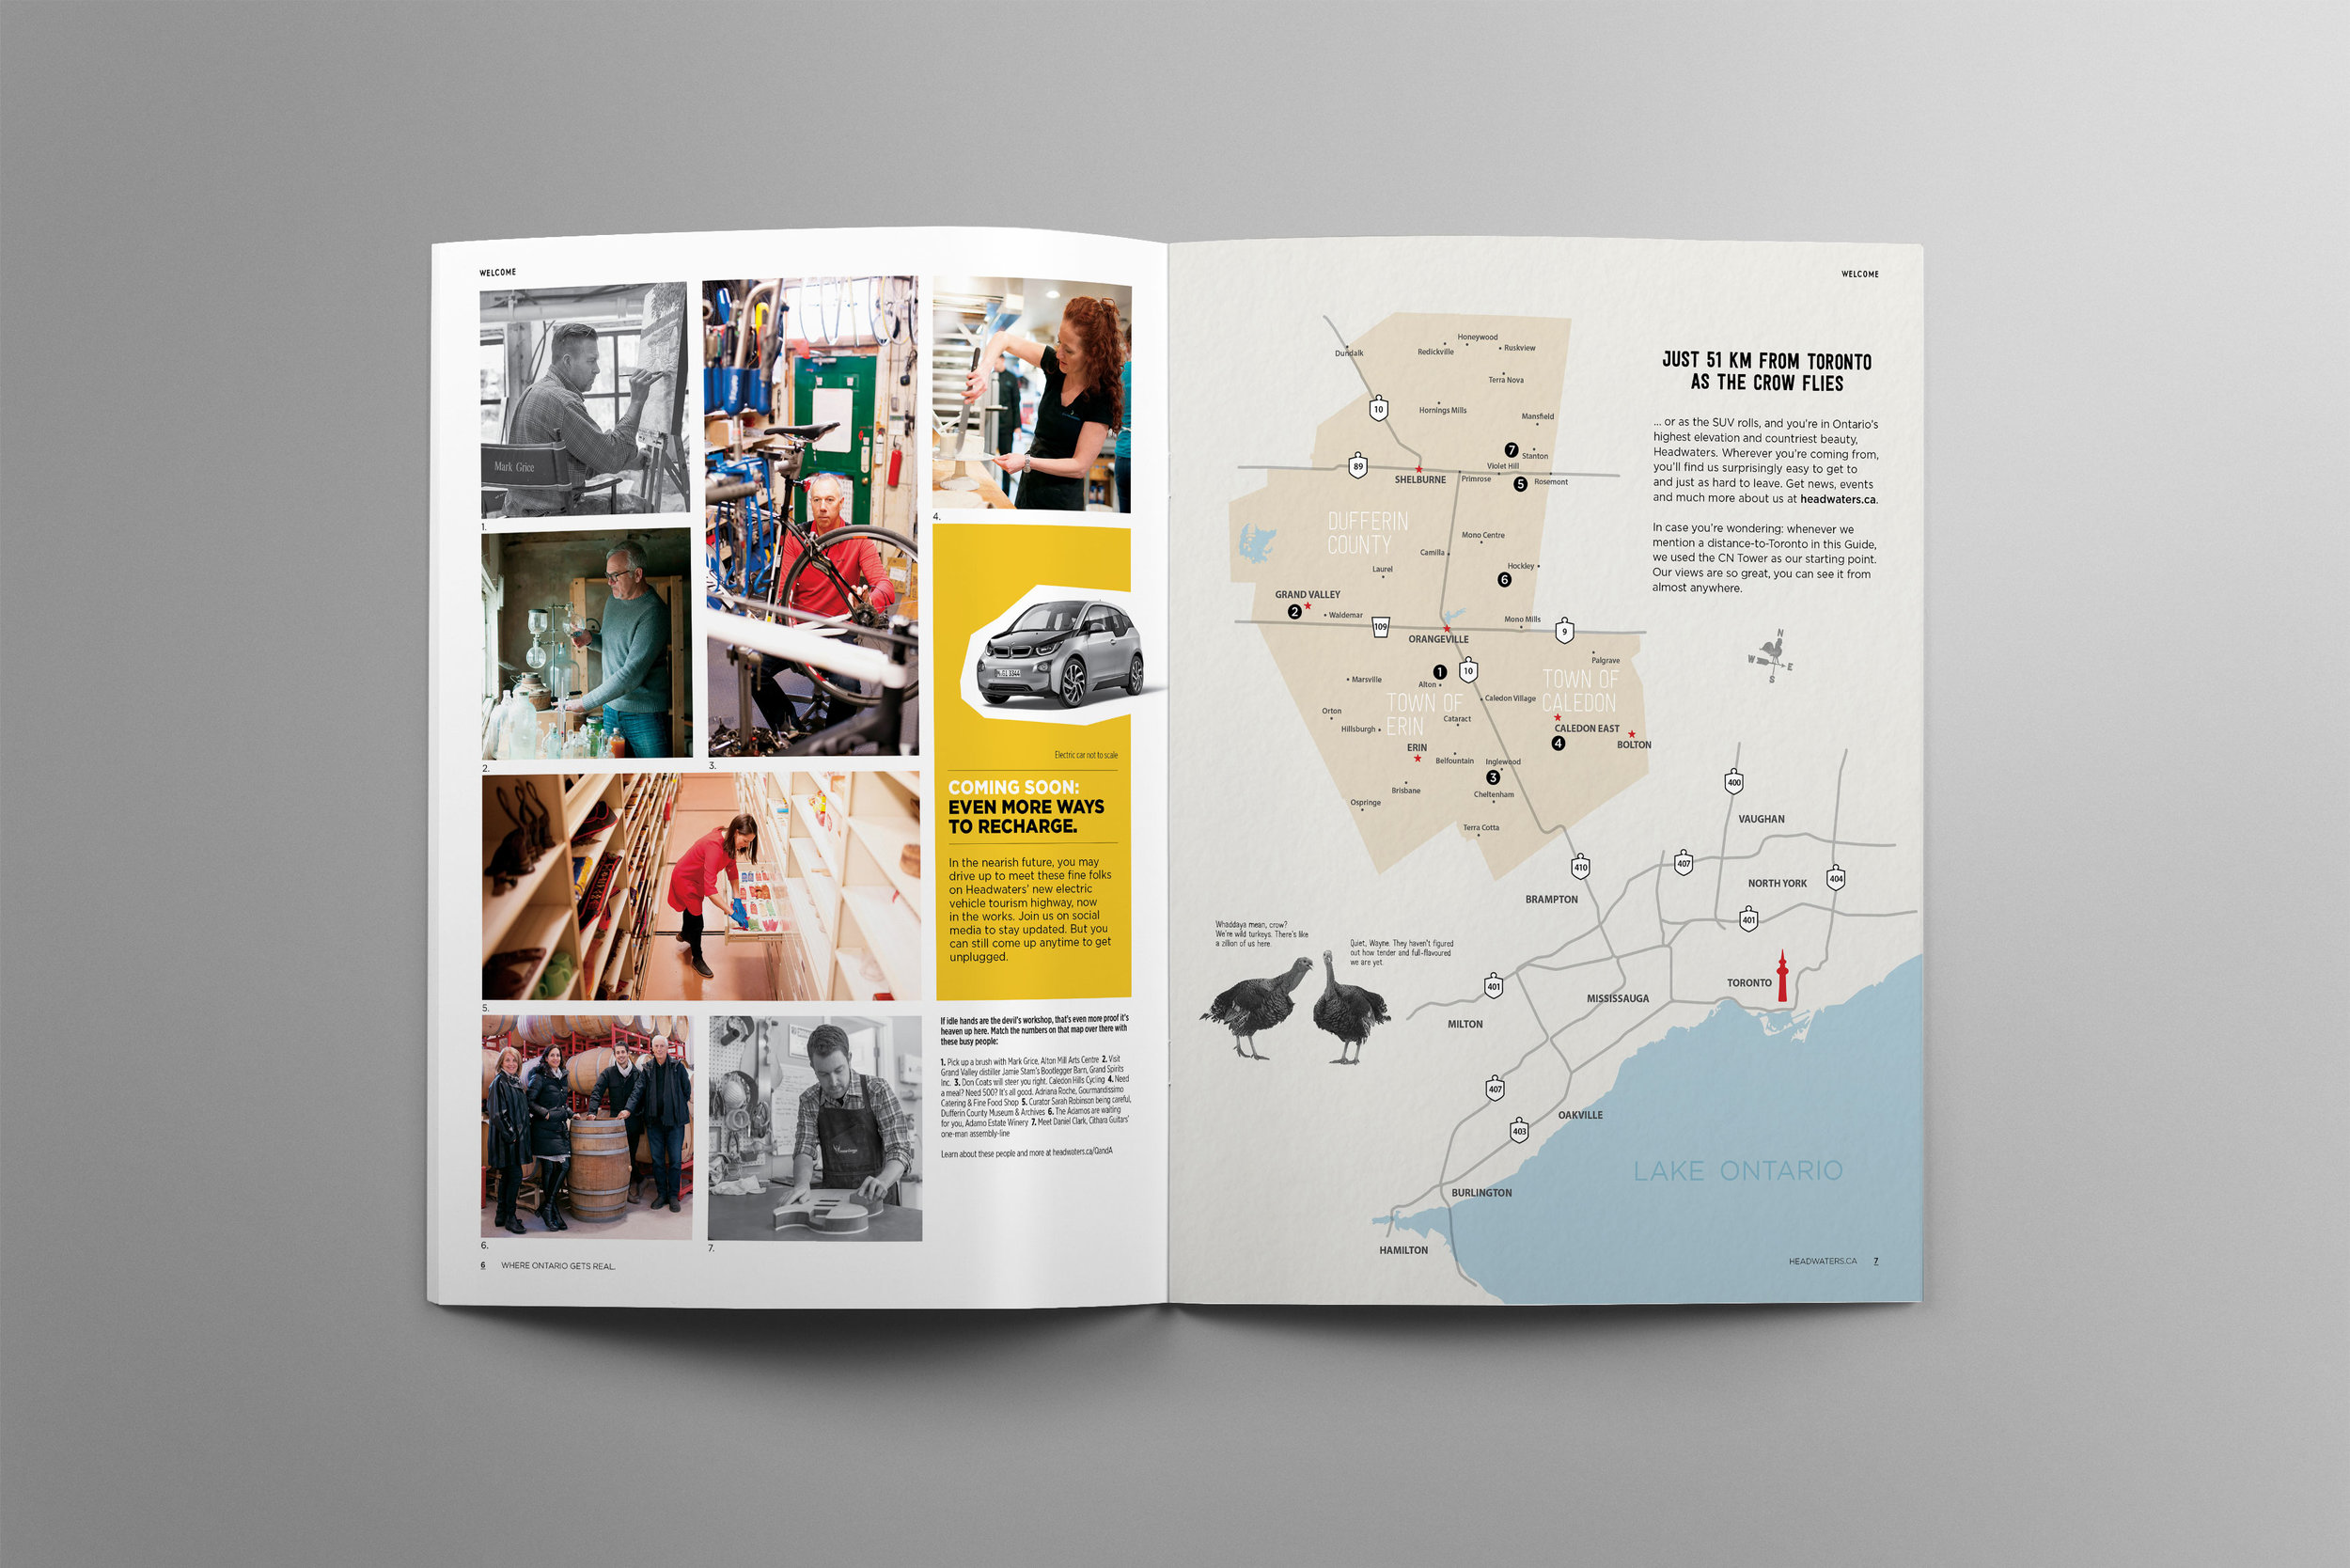 Just 40 minutes north of Toronto, this illustrated map shows visitors what there is to do in rural Ontario in your day trip.